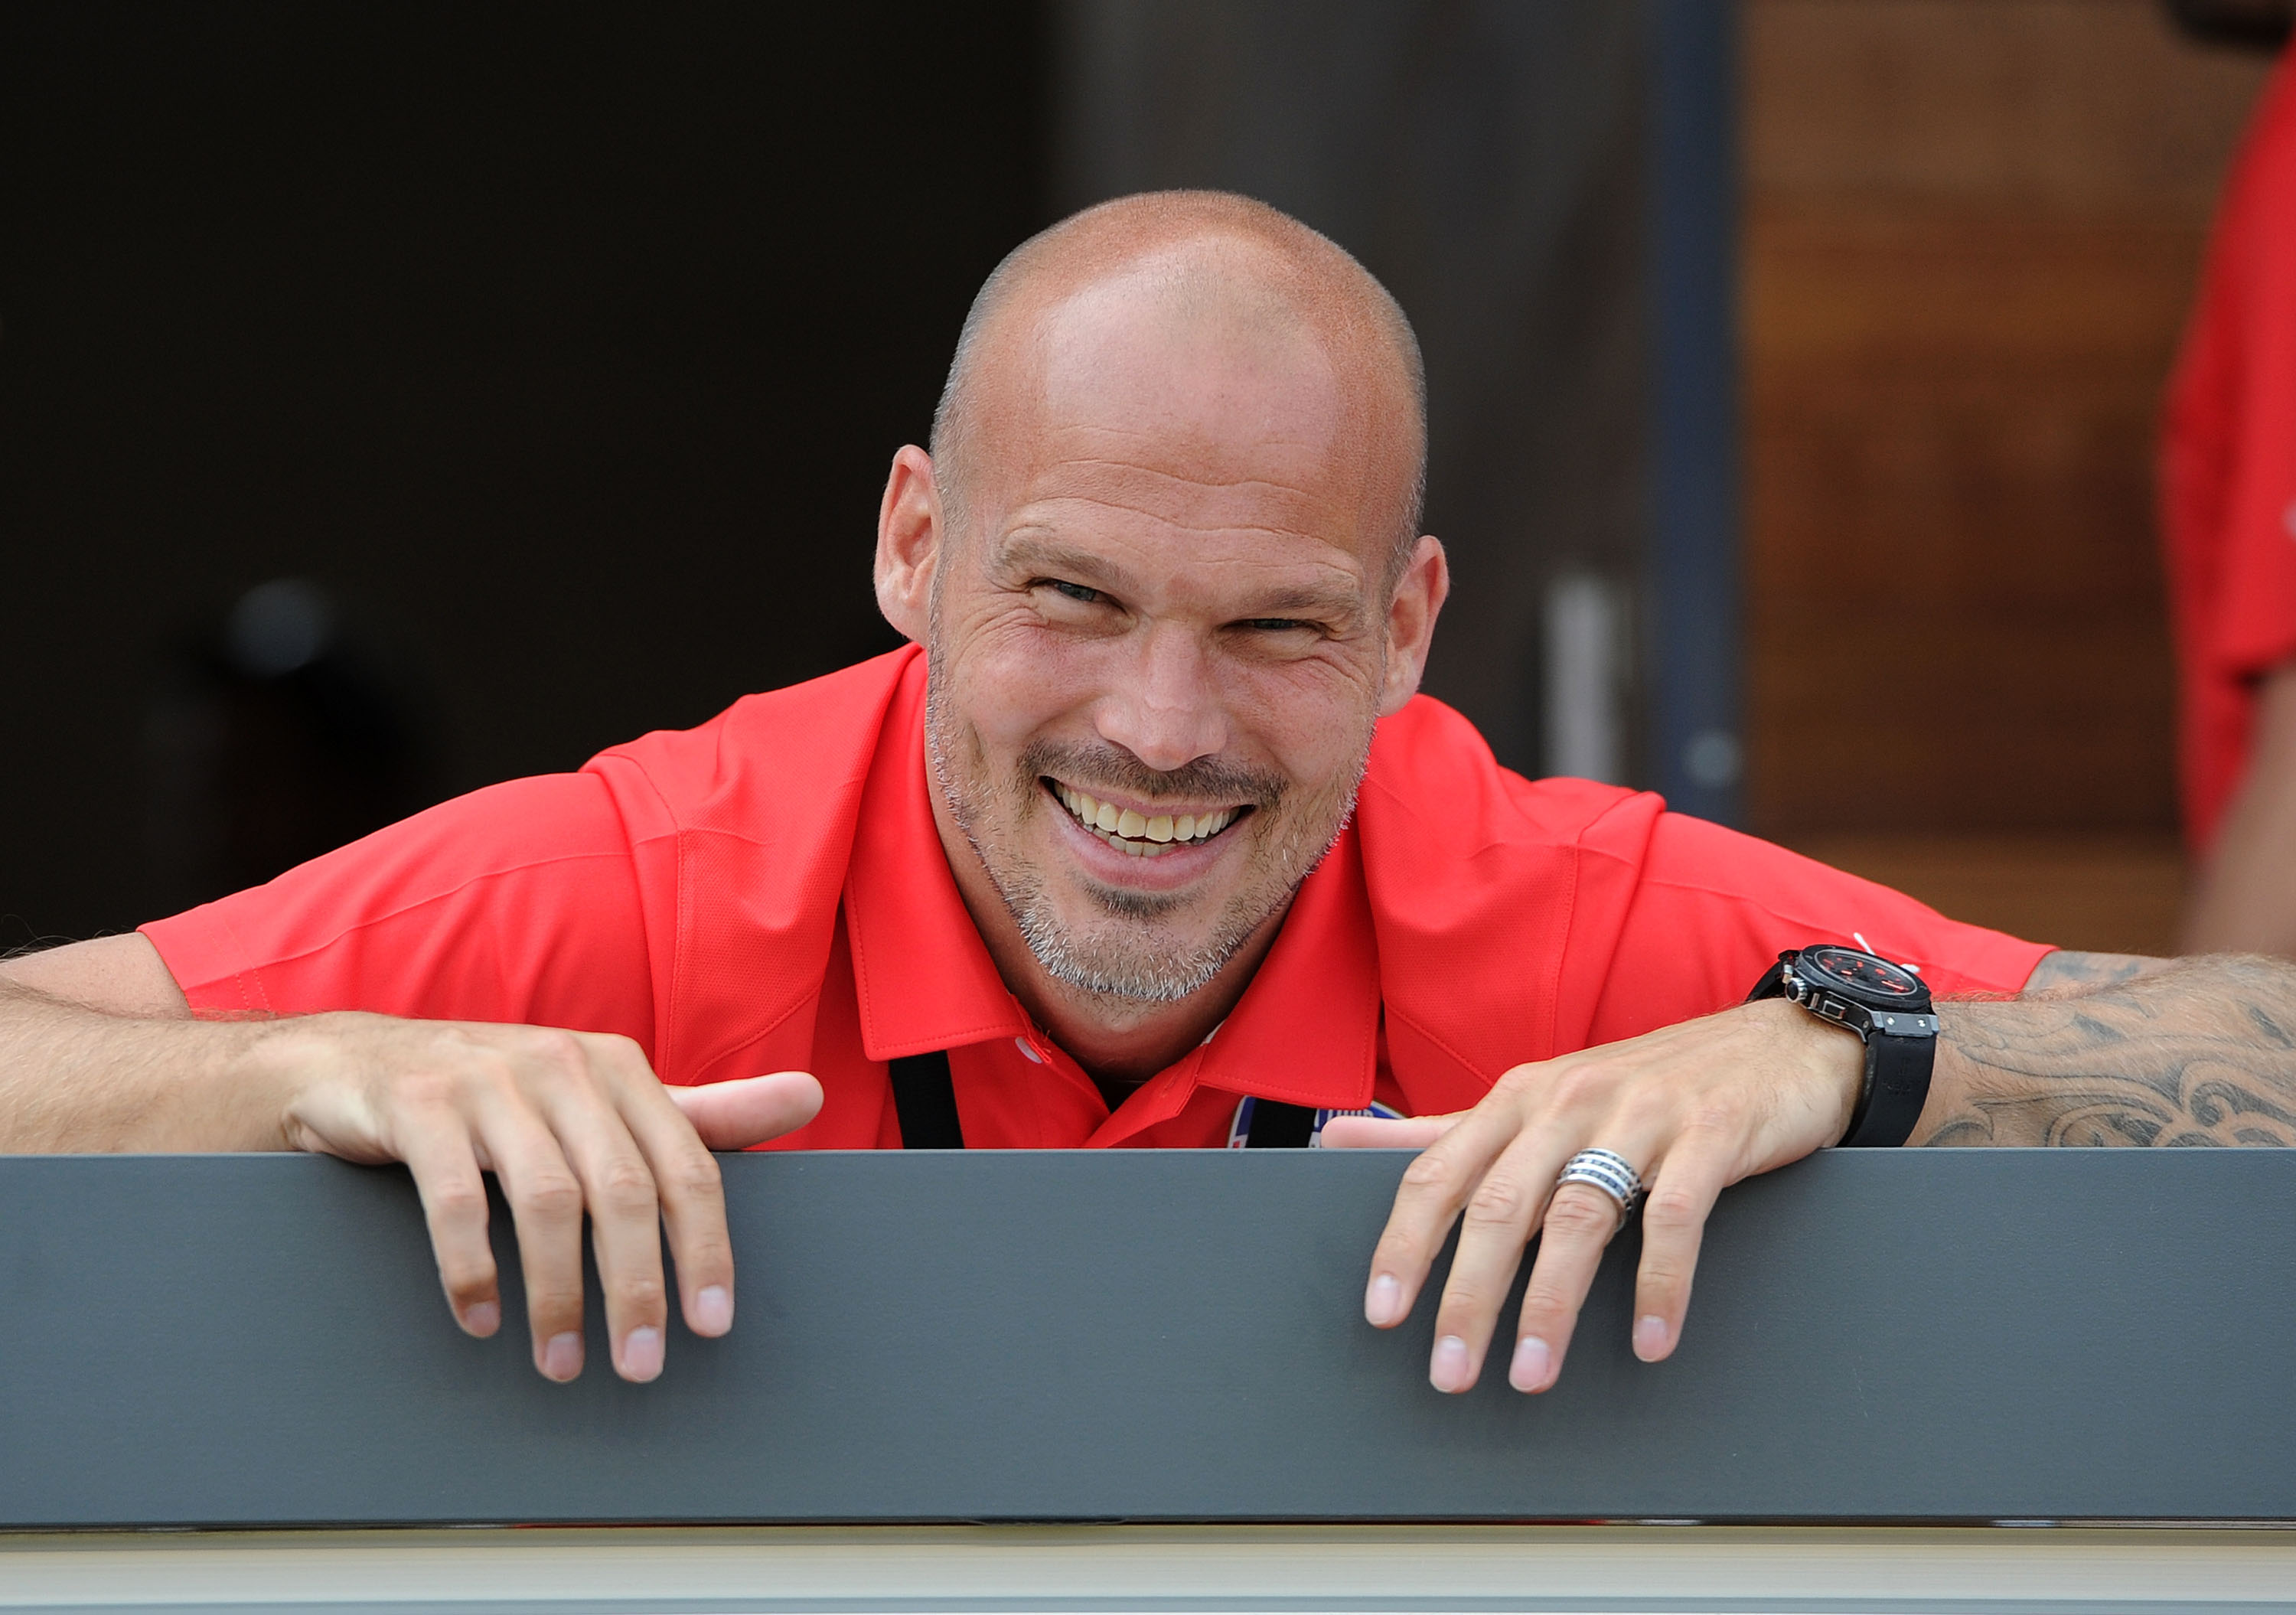 Arsenal legend Freddie Ljungberg lined up by Arsene Wenger to replace Thierry Henry